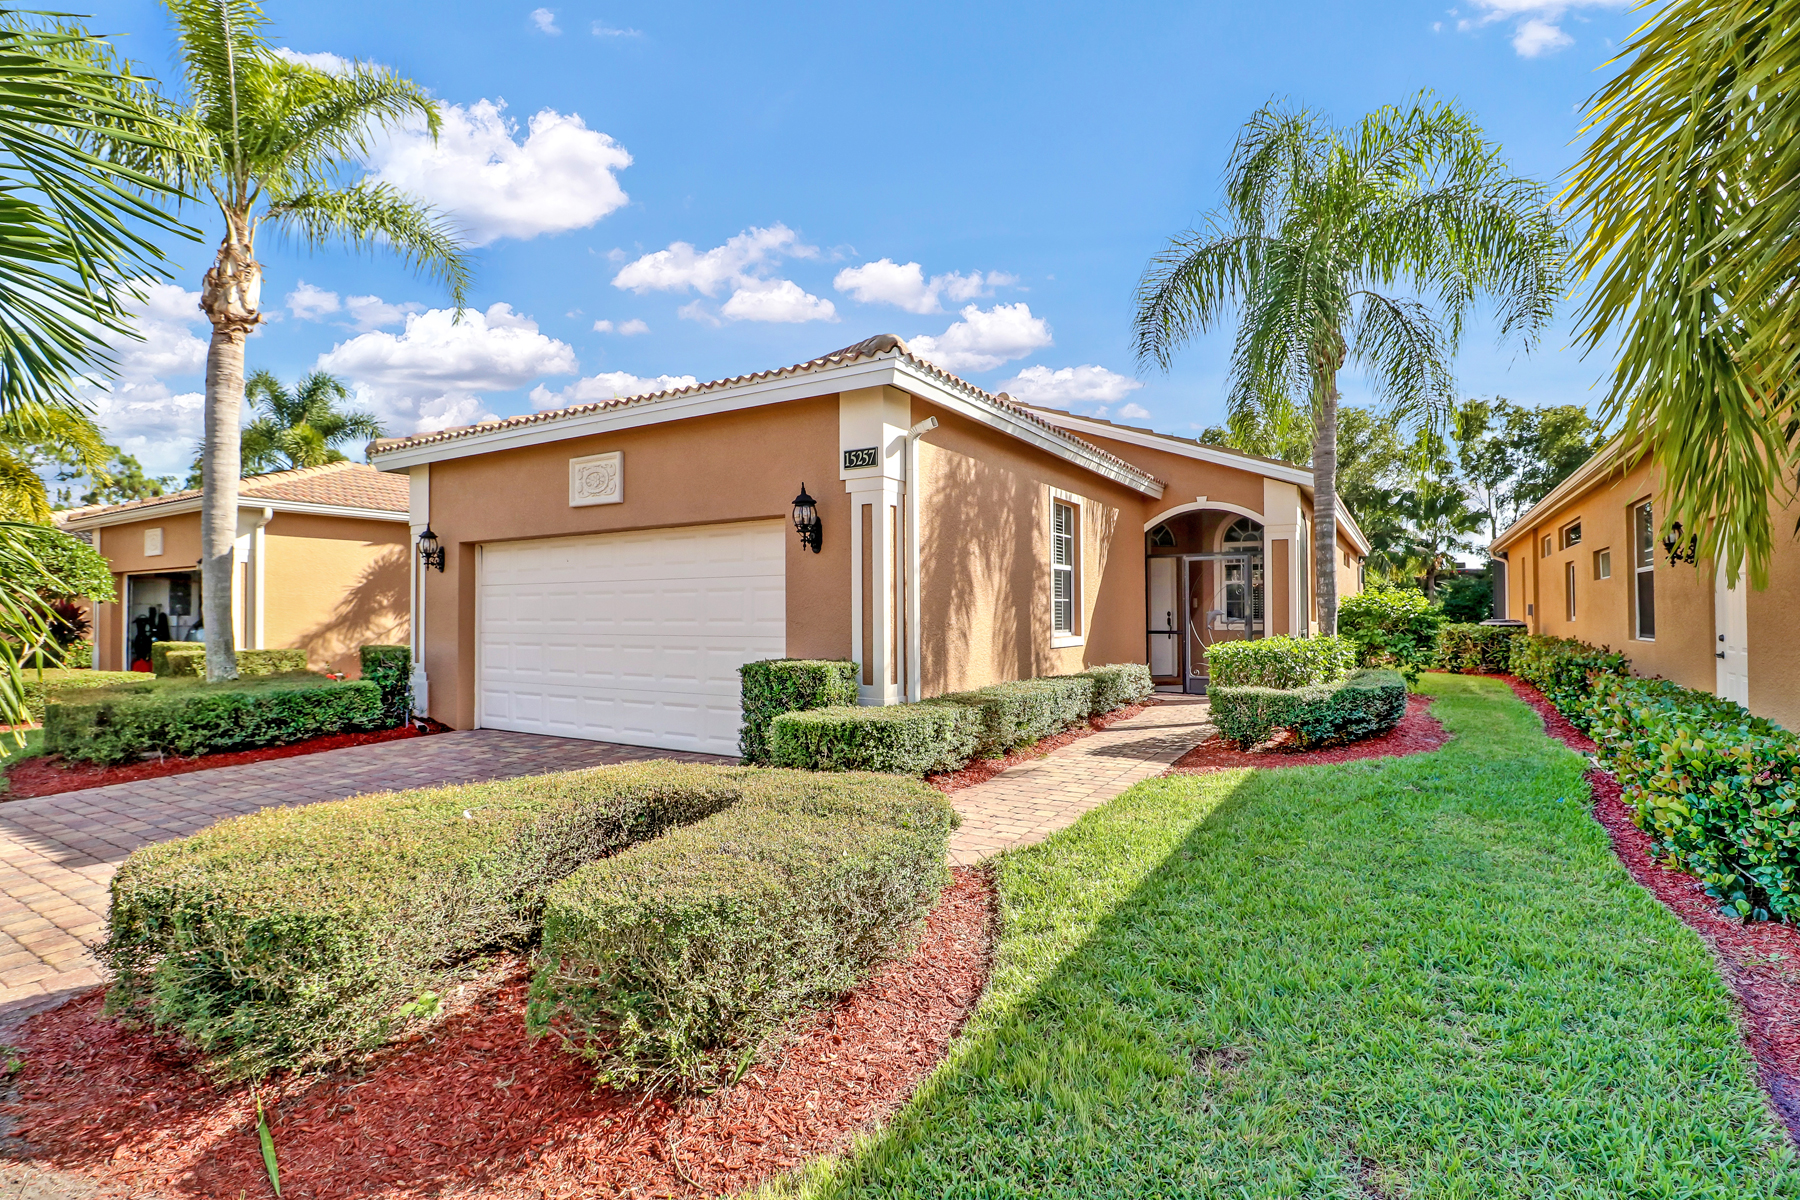 Steal of a Deal - SFH under $ 300K in North Naples!